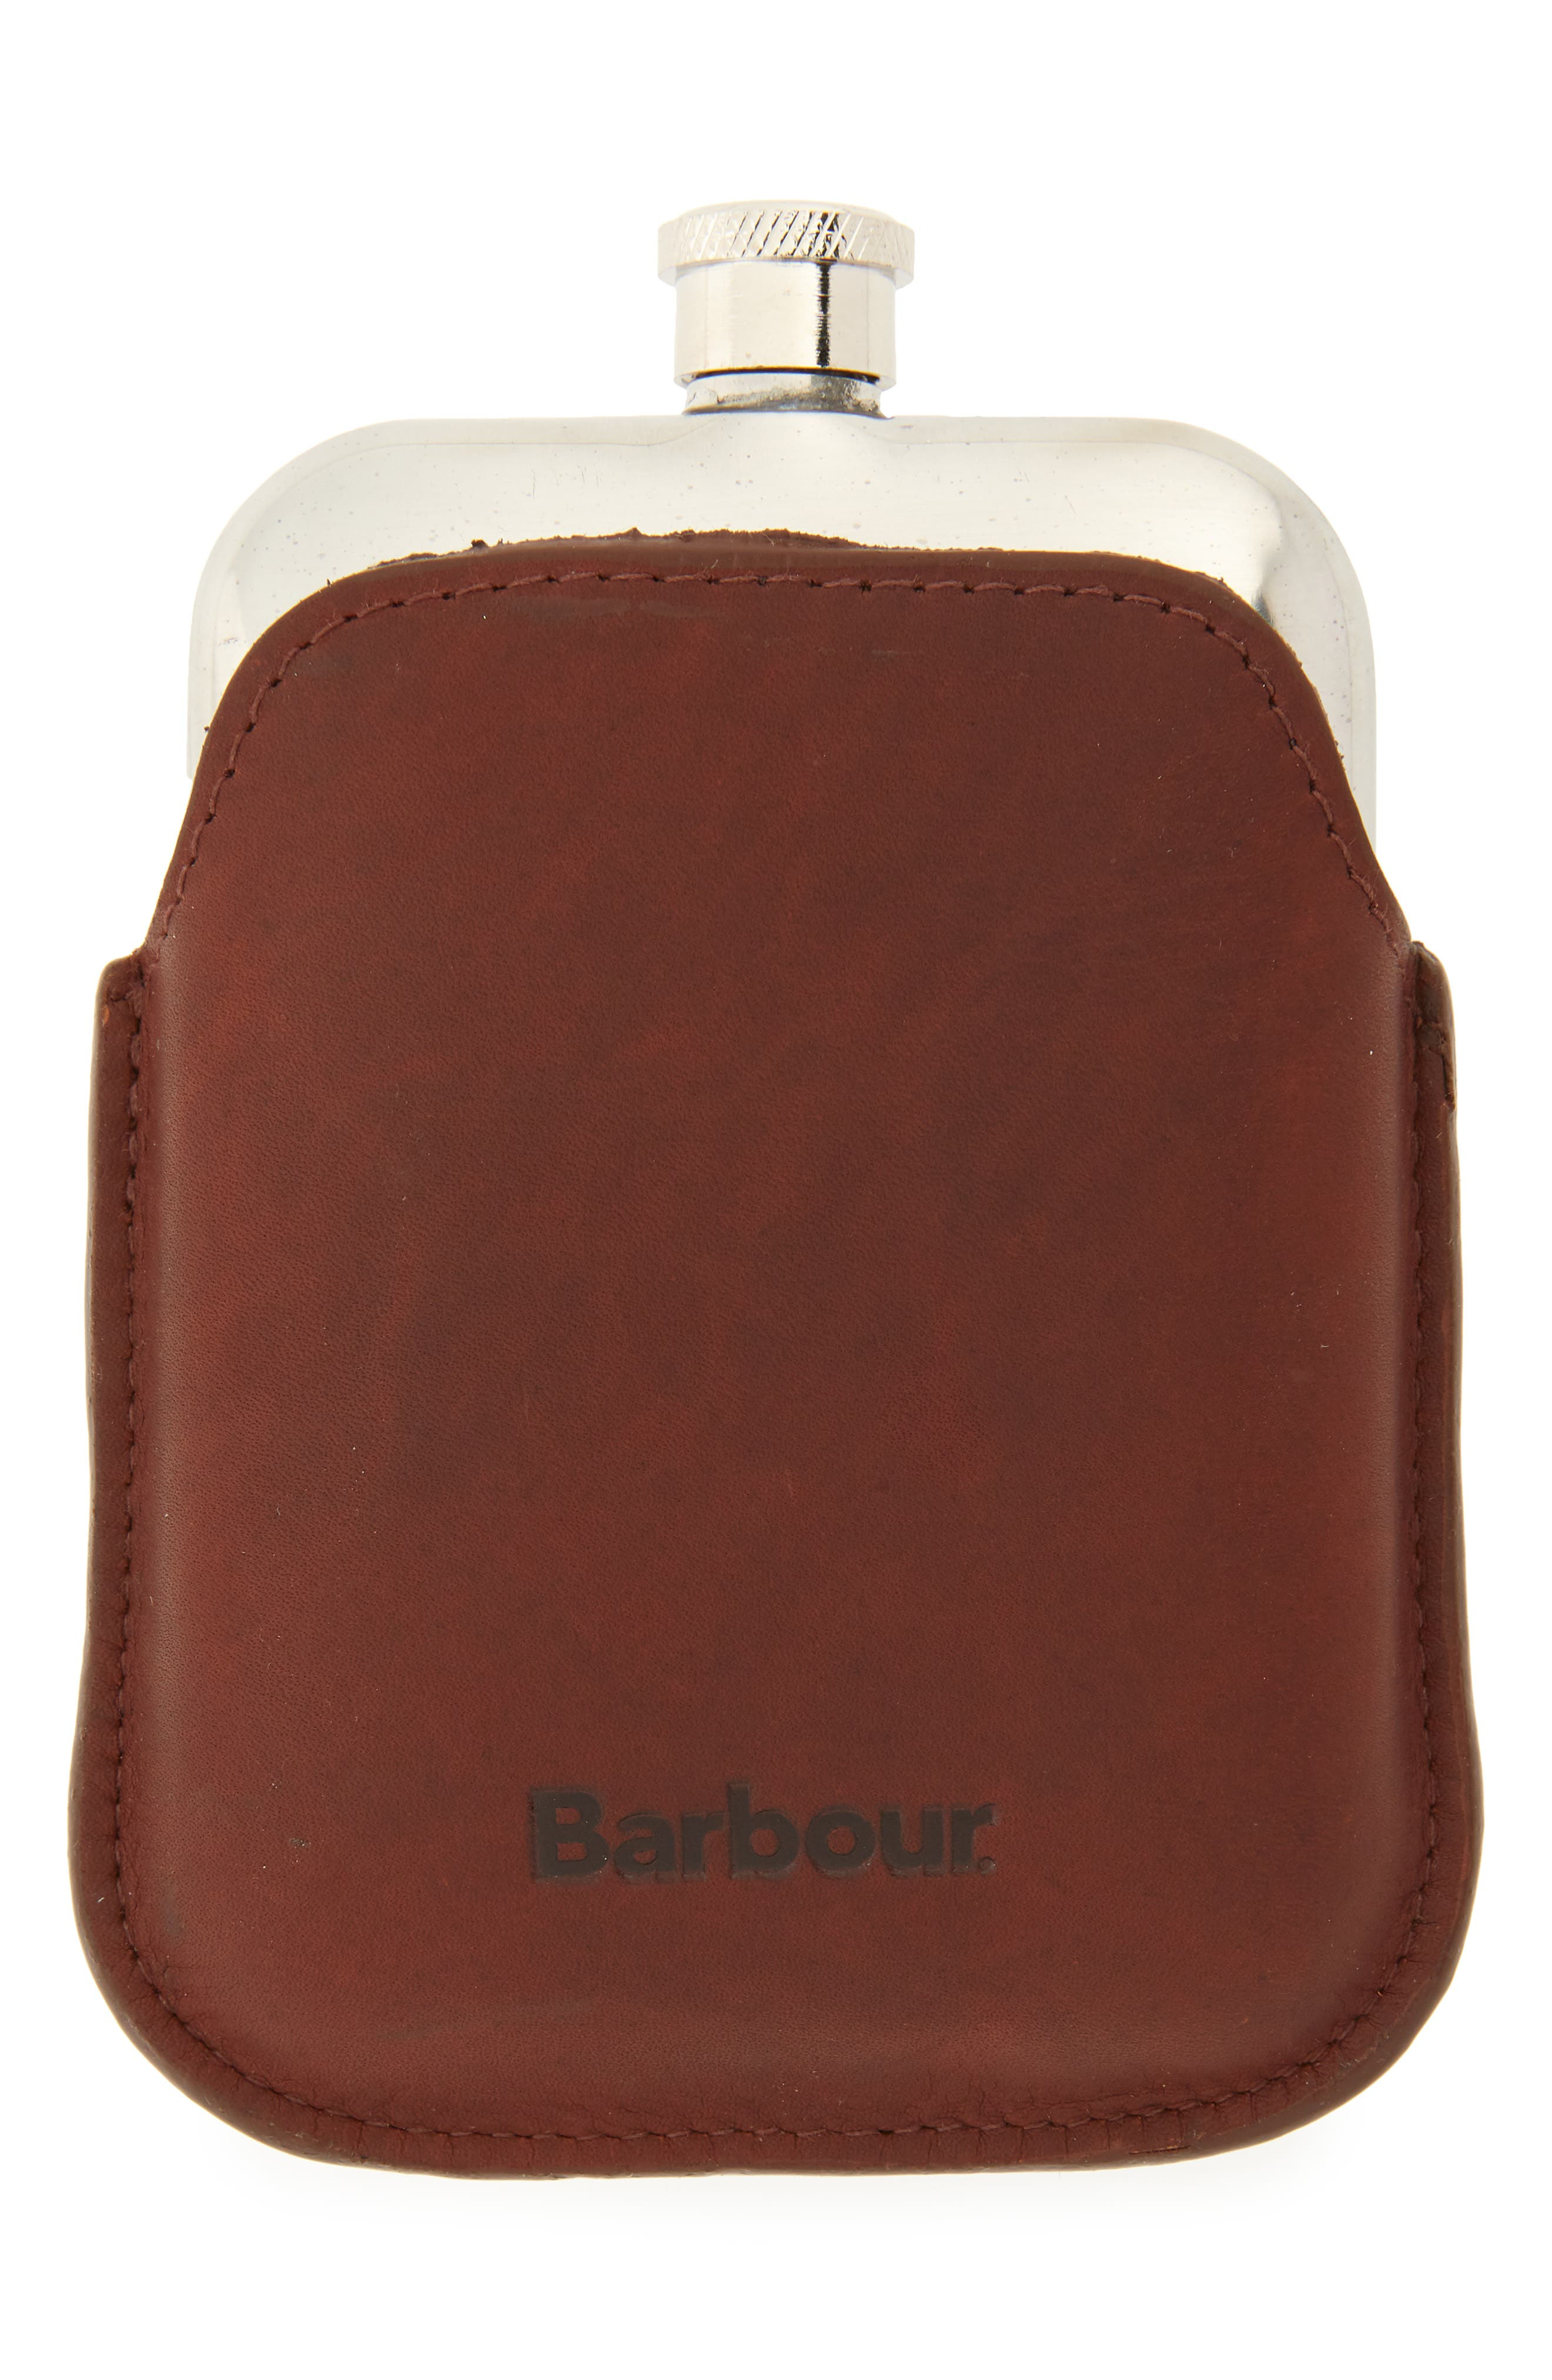 BARBOUR,                             Waxed Leather Flask,                             Main thumbnail 1, color,                             DARK BROWN